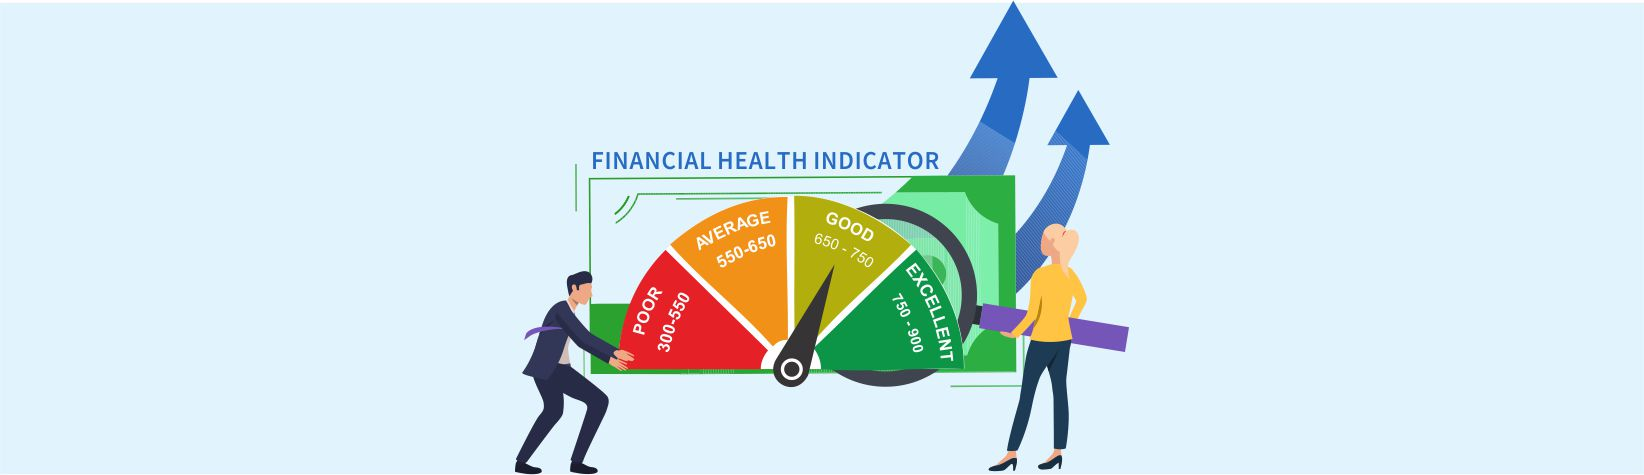 Credit Score: Your financial Health Indicator - All you need to know